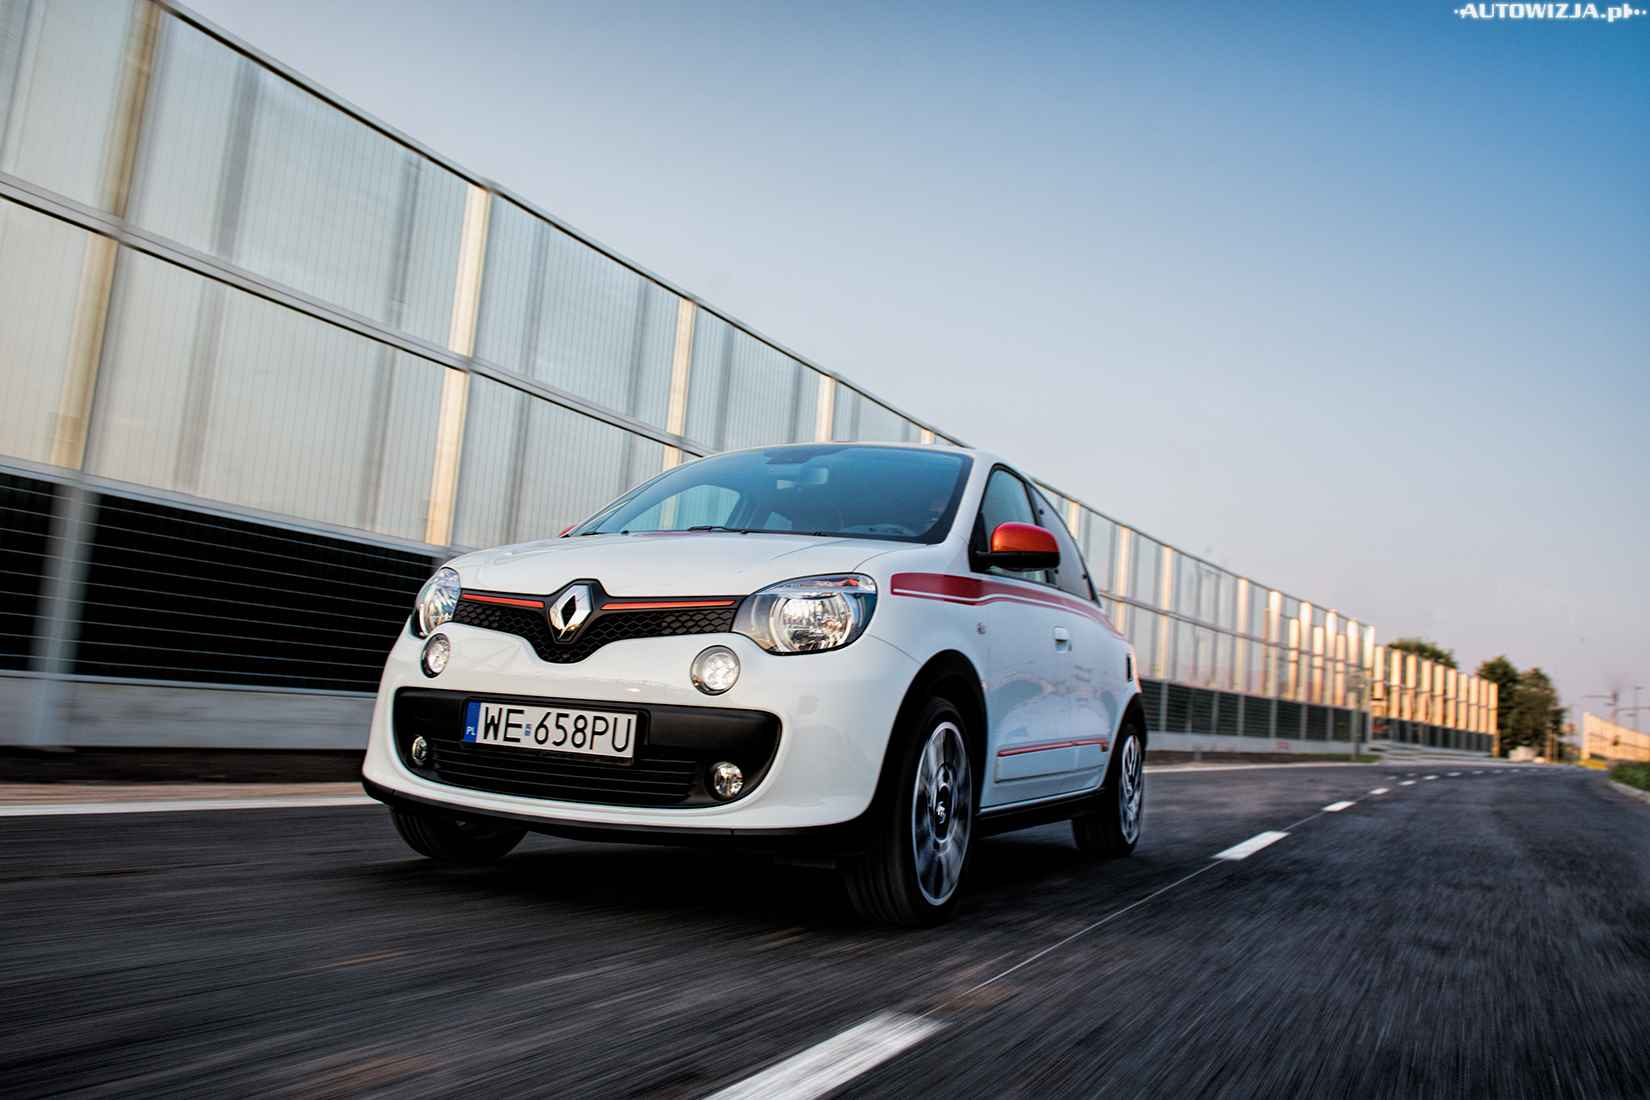 renault twingo gt test motoryzacja. Black Bedroom Furniture Sets. Home Design Ideas